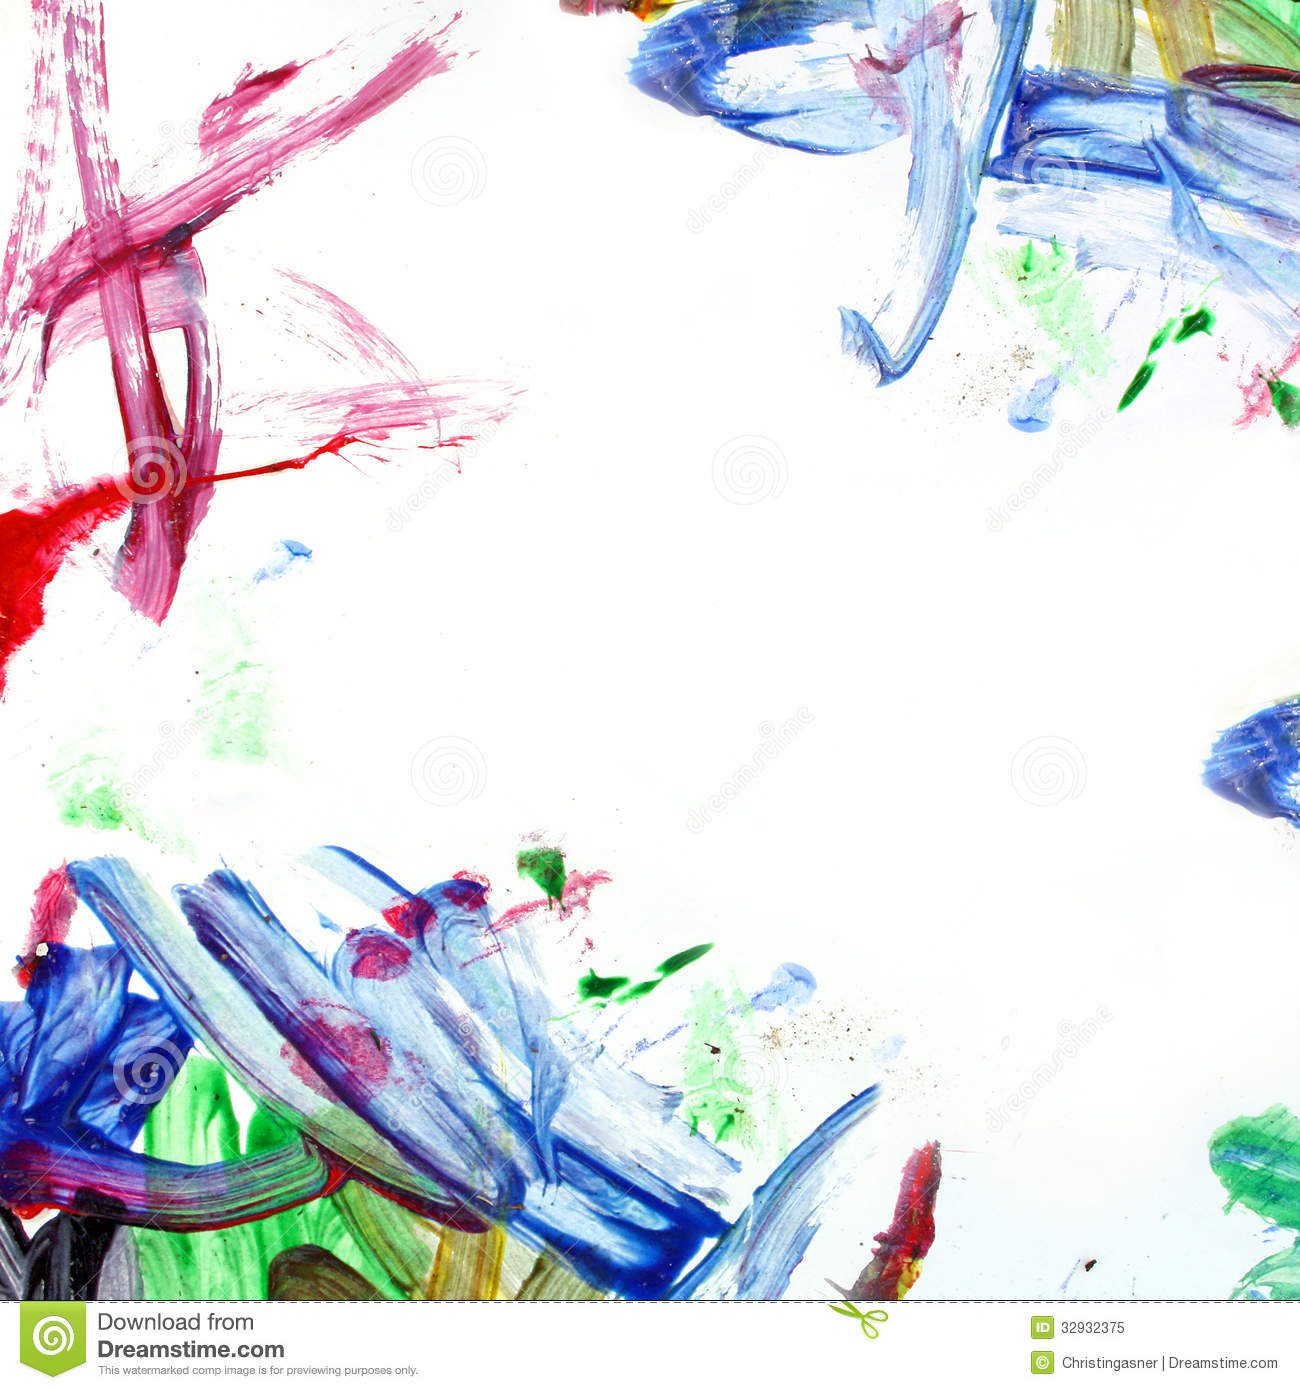 ... by a border that a child has painted in a scribbled and messy manner